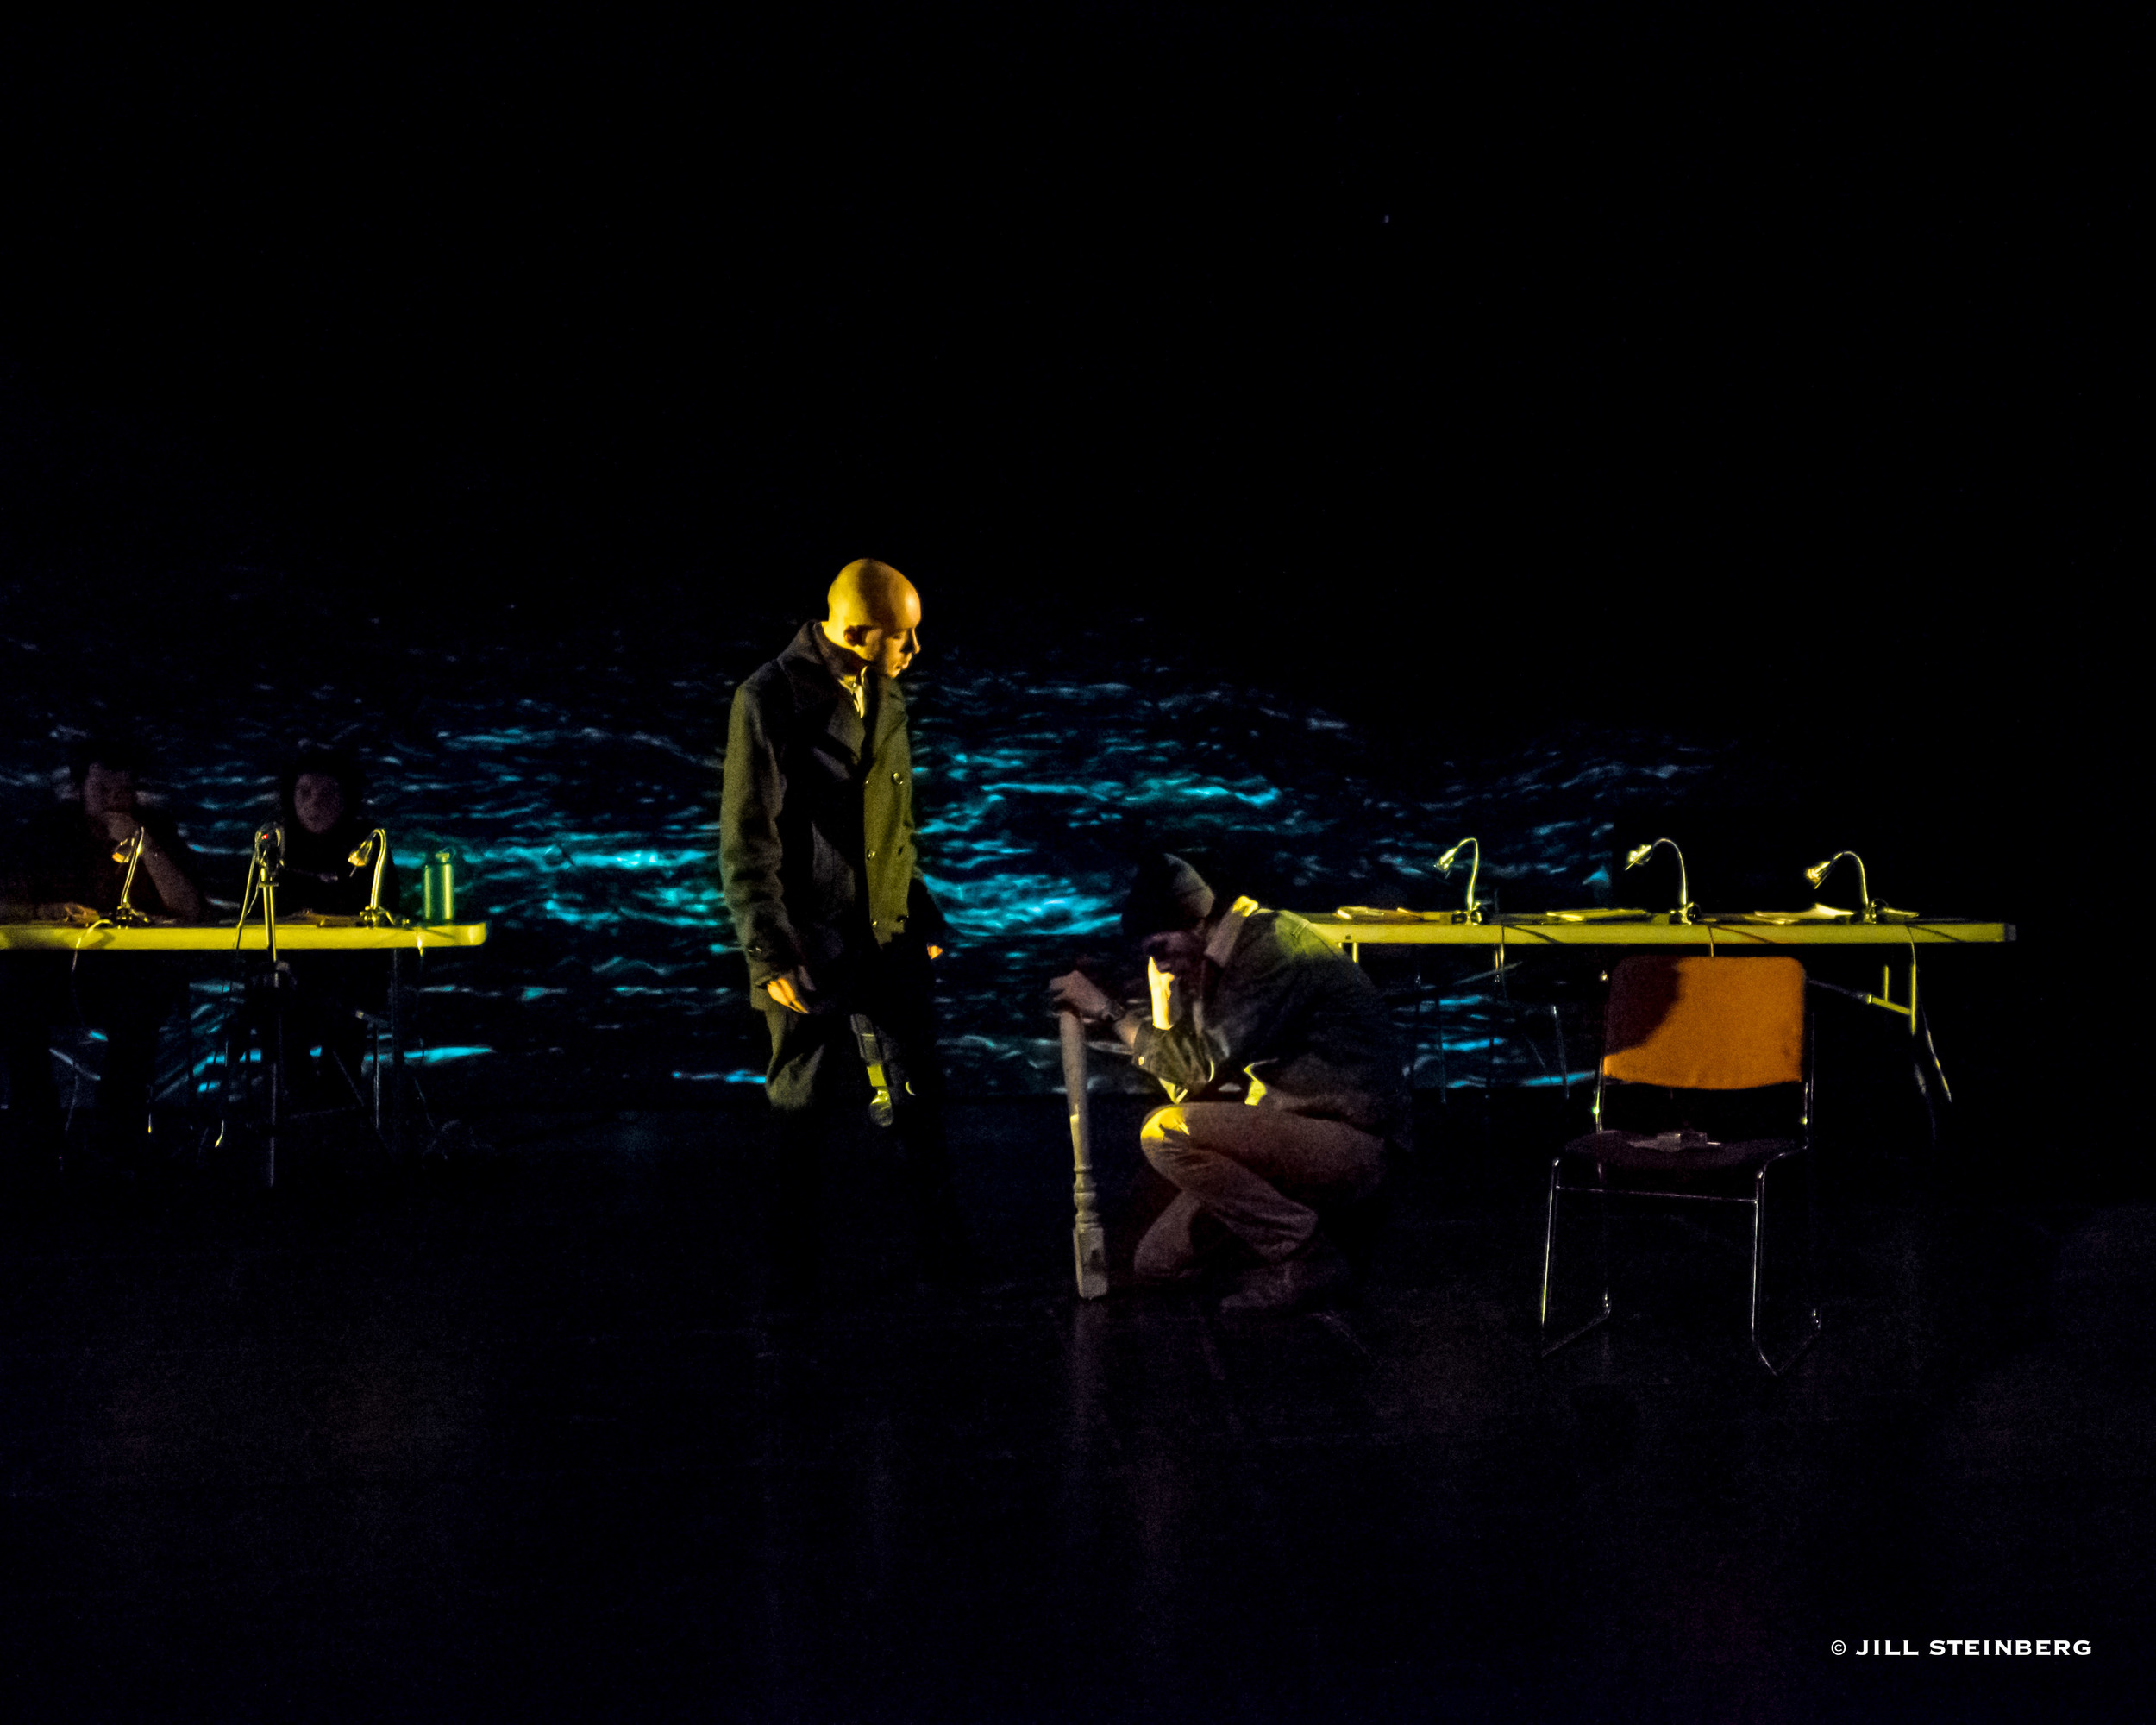 2014-04-11 - Moby Dick — Rehearsed_Moby Dick - Rehearsed_0515_.jpg